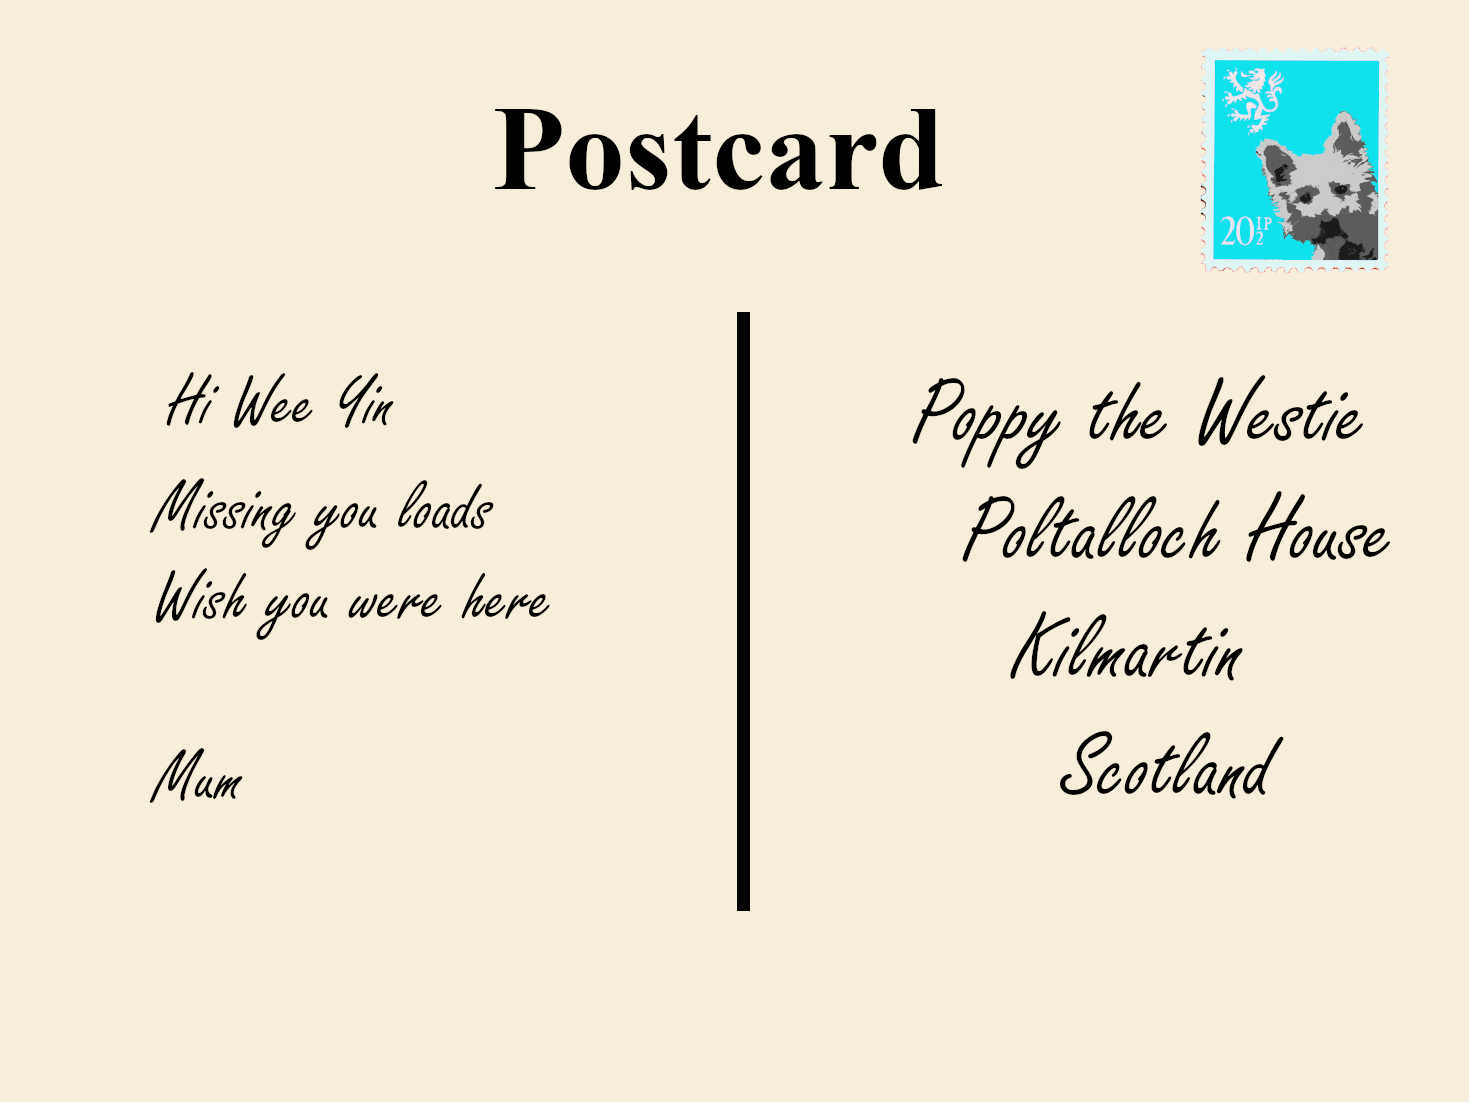 Postcards from everywhere